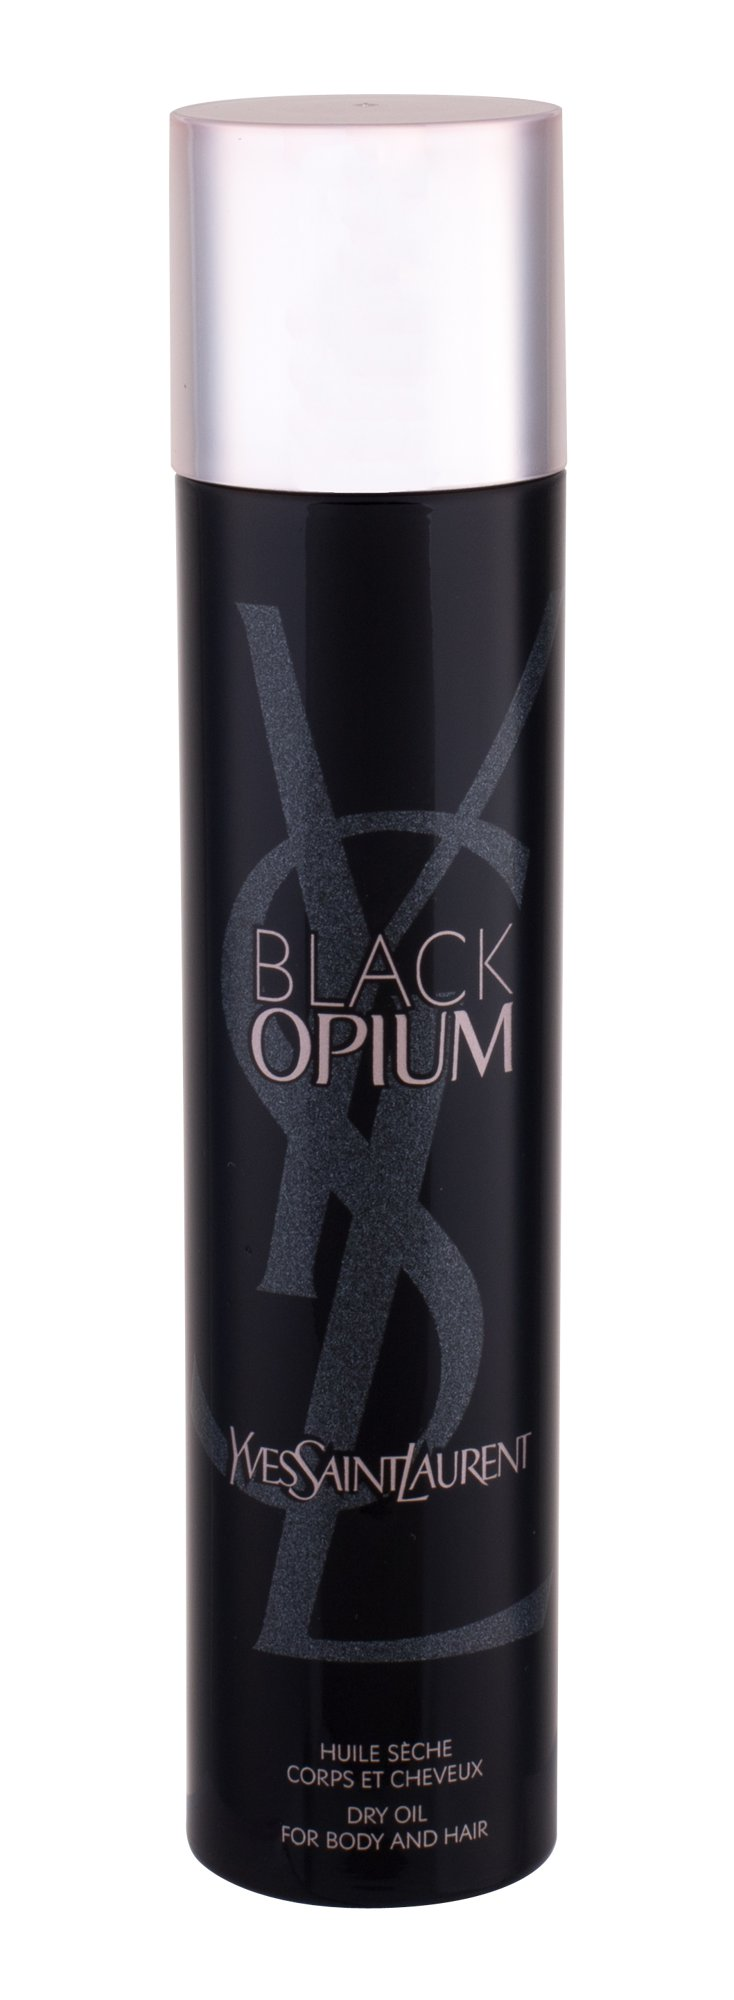 Yves Saint Laurent Black Opium, Parfumovaný olej 100ml